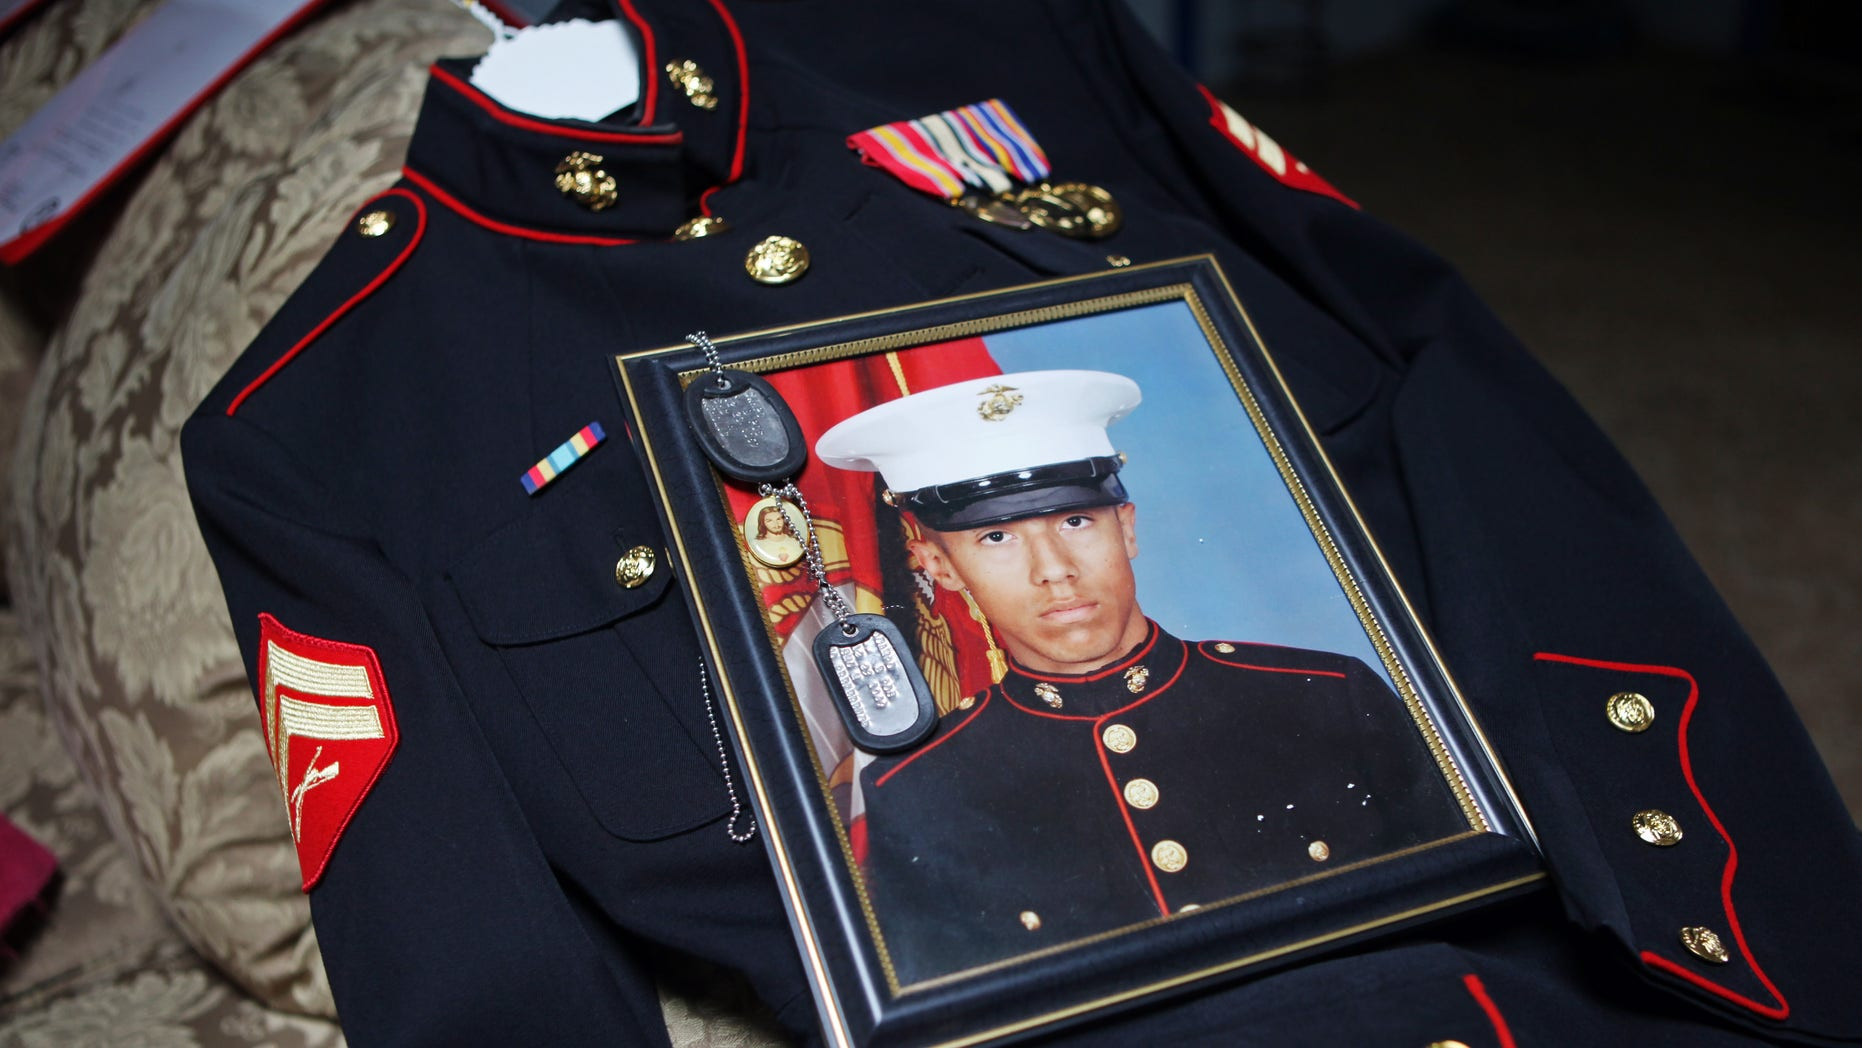 January 15: Itzcoatl Ocampo's dress uniform, government military photo, dog tags and a religious medallion that went to war with him lie on display at Ocampo's home in Yorba Linda, California.